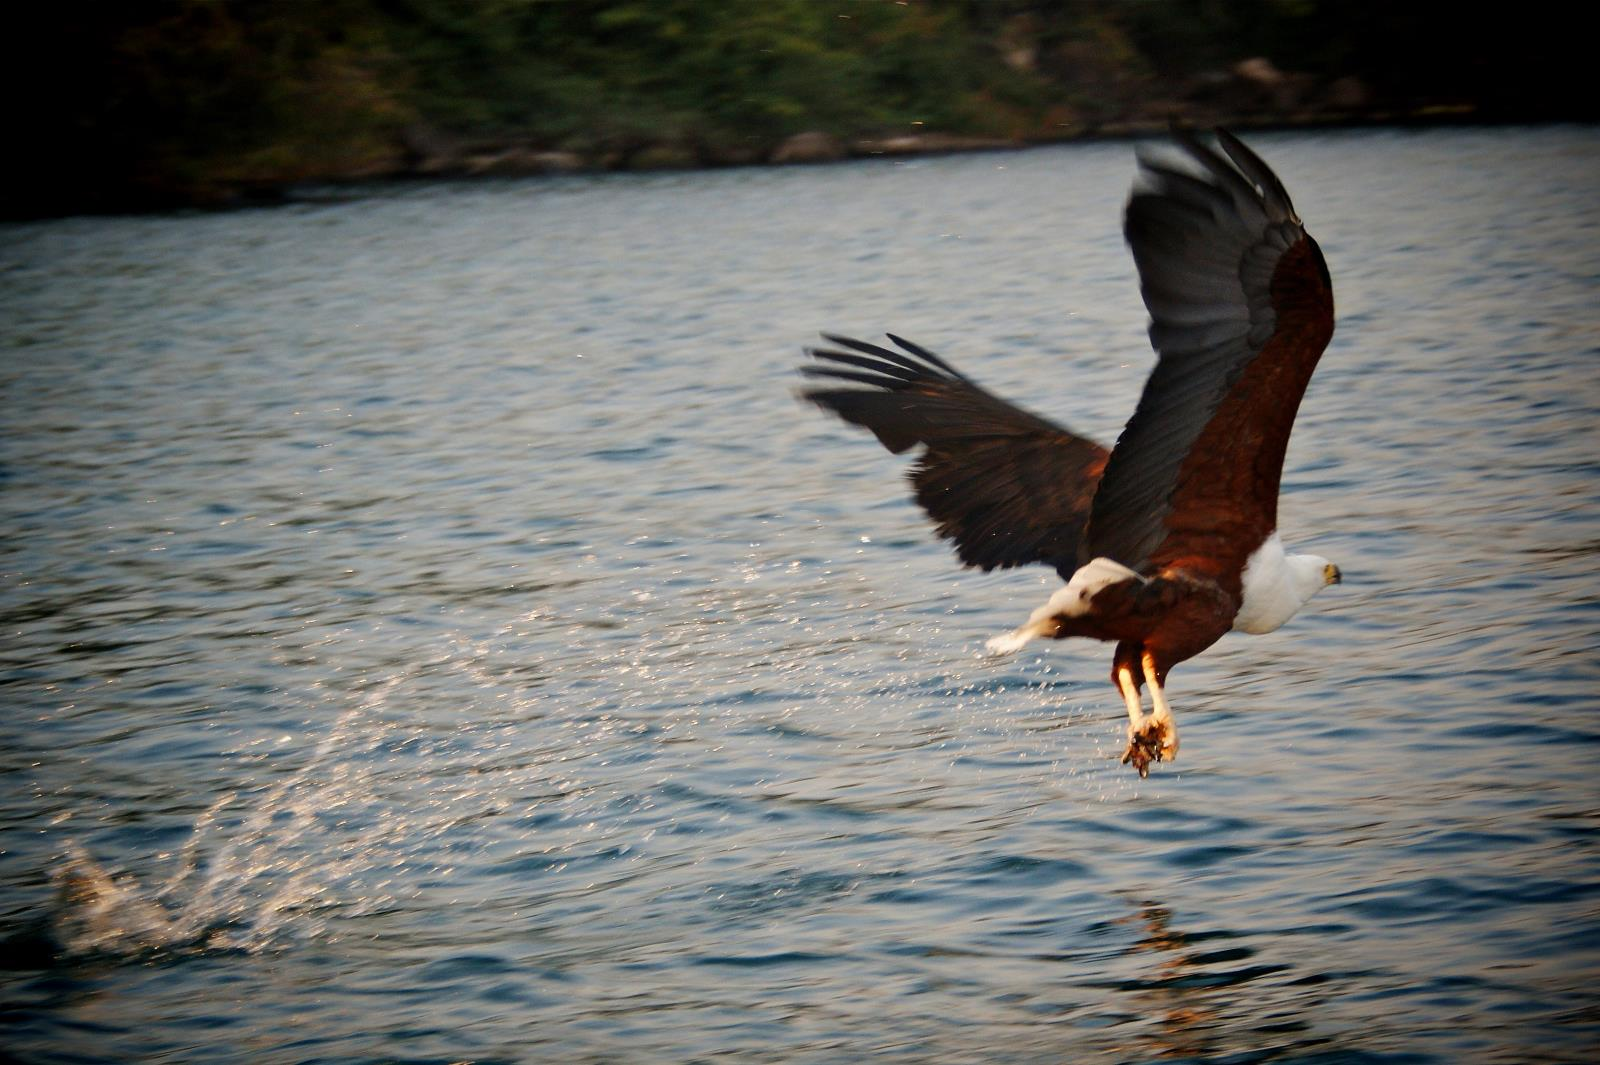 Boot-safari on the lake of stars with fish eagle encounter, Lake Malawi